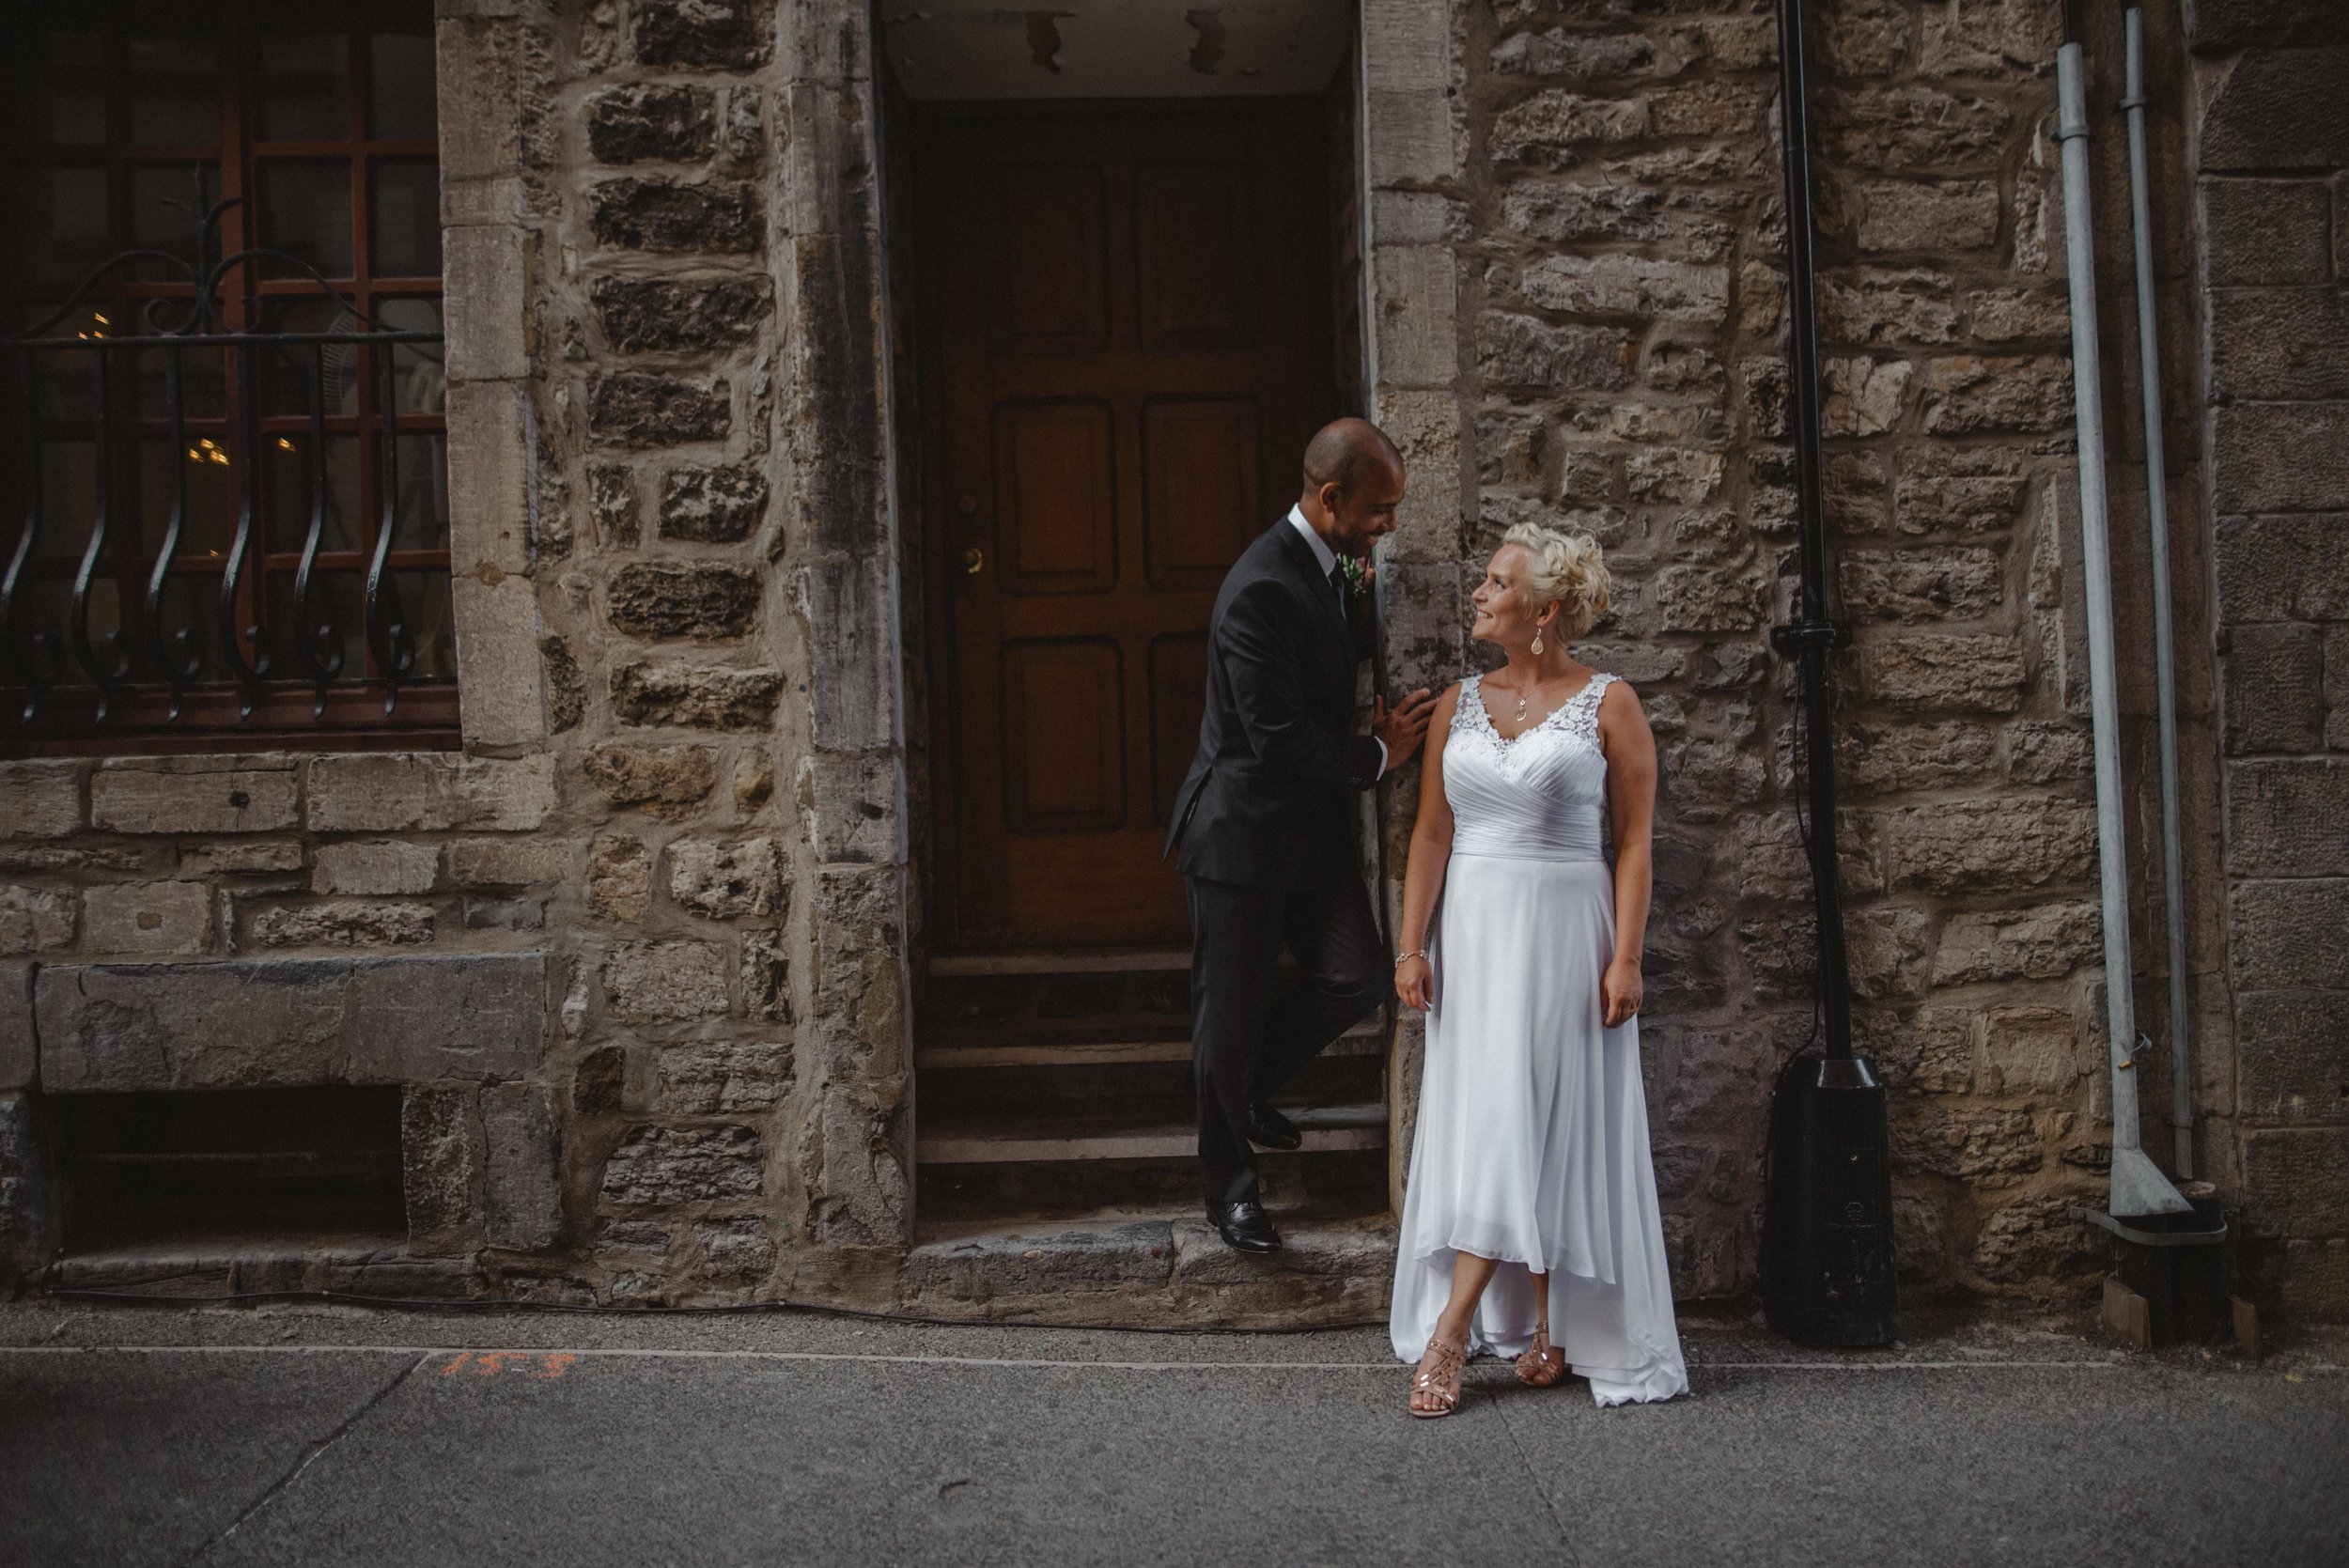 photographe_mariage_gatineau_photographer_montreal_wedding_ottawa-37.jpg